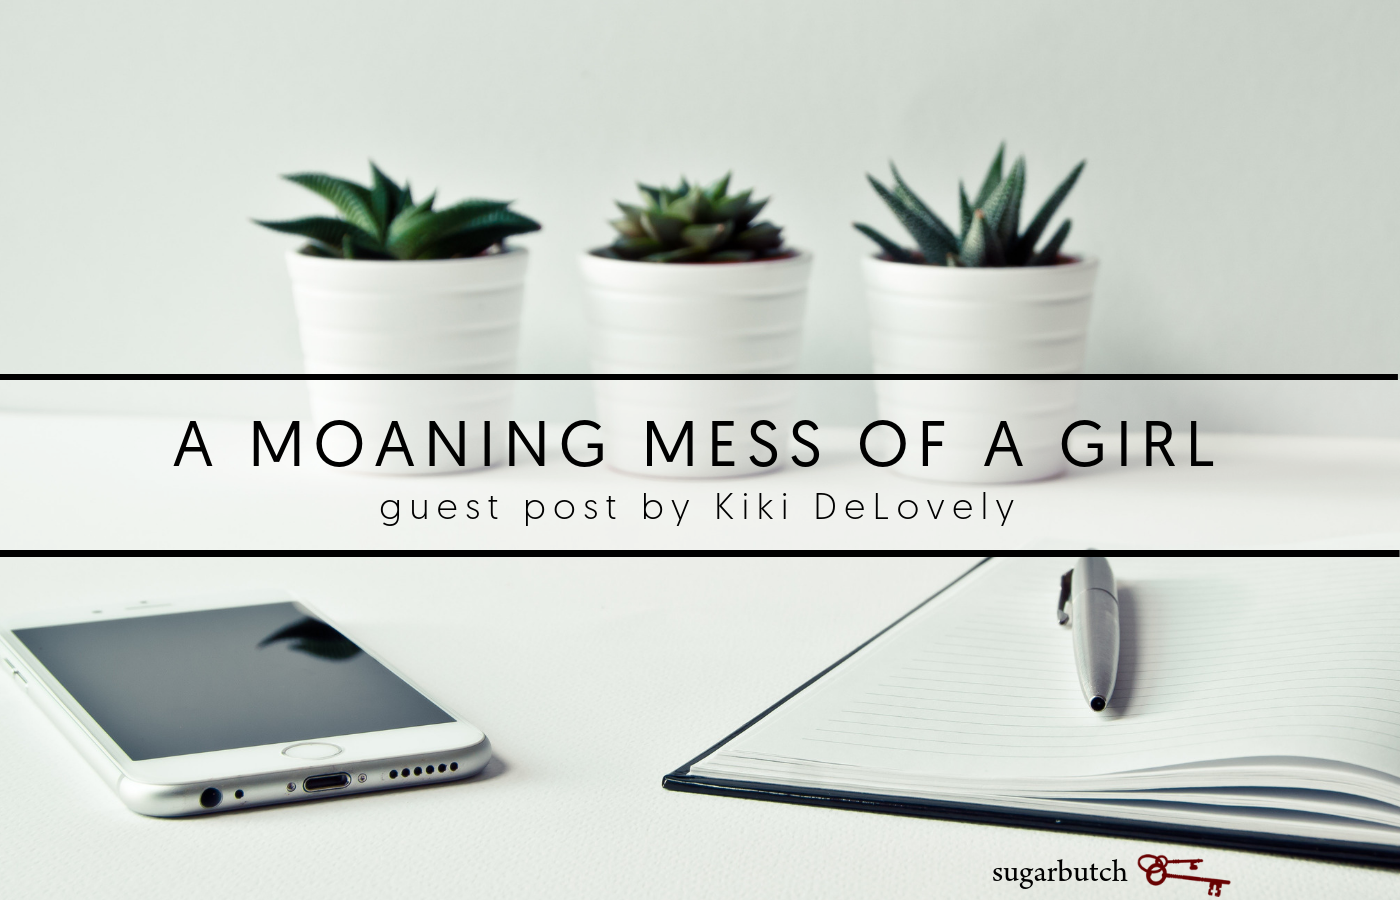 A Moaning Mess of a Girl, Guest Post by Kiki DeLovely